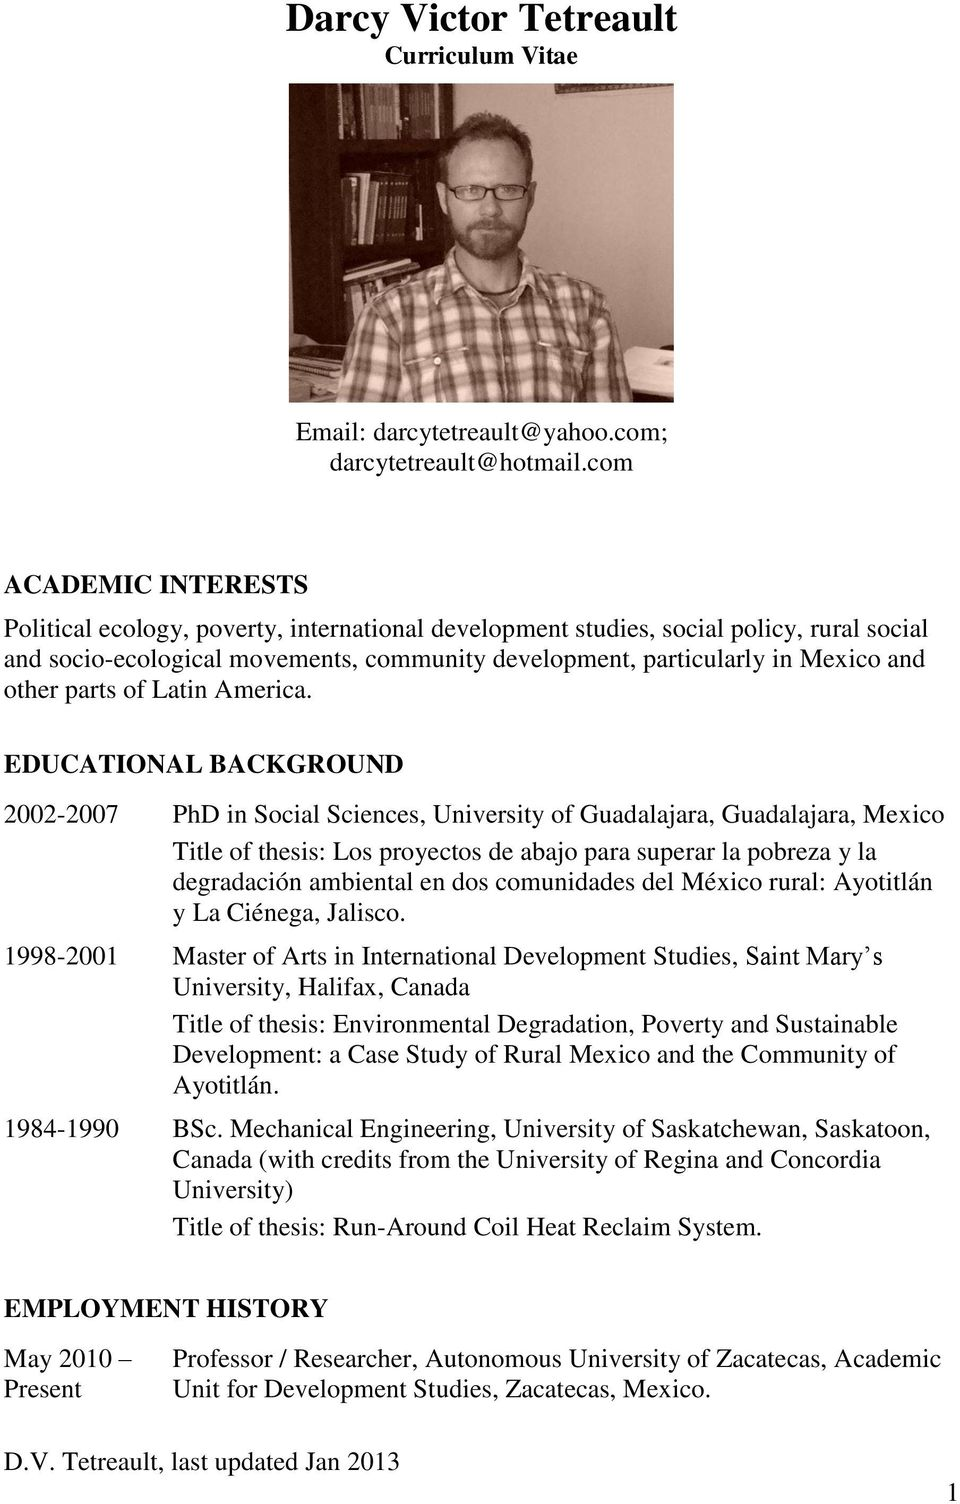 Recent PhD Theses - Applied Mathematics